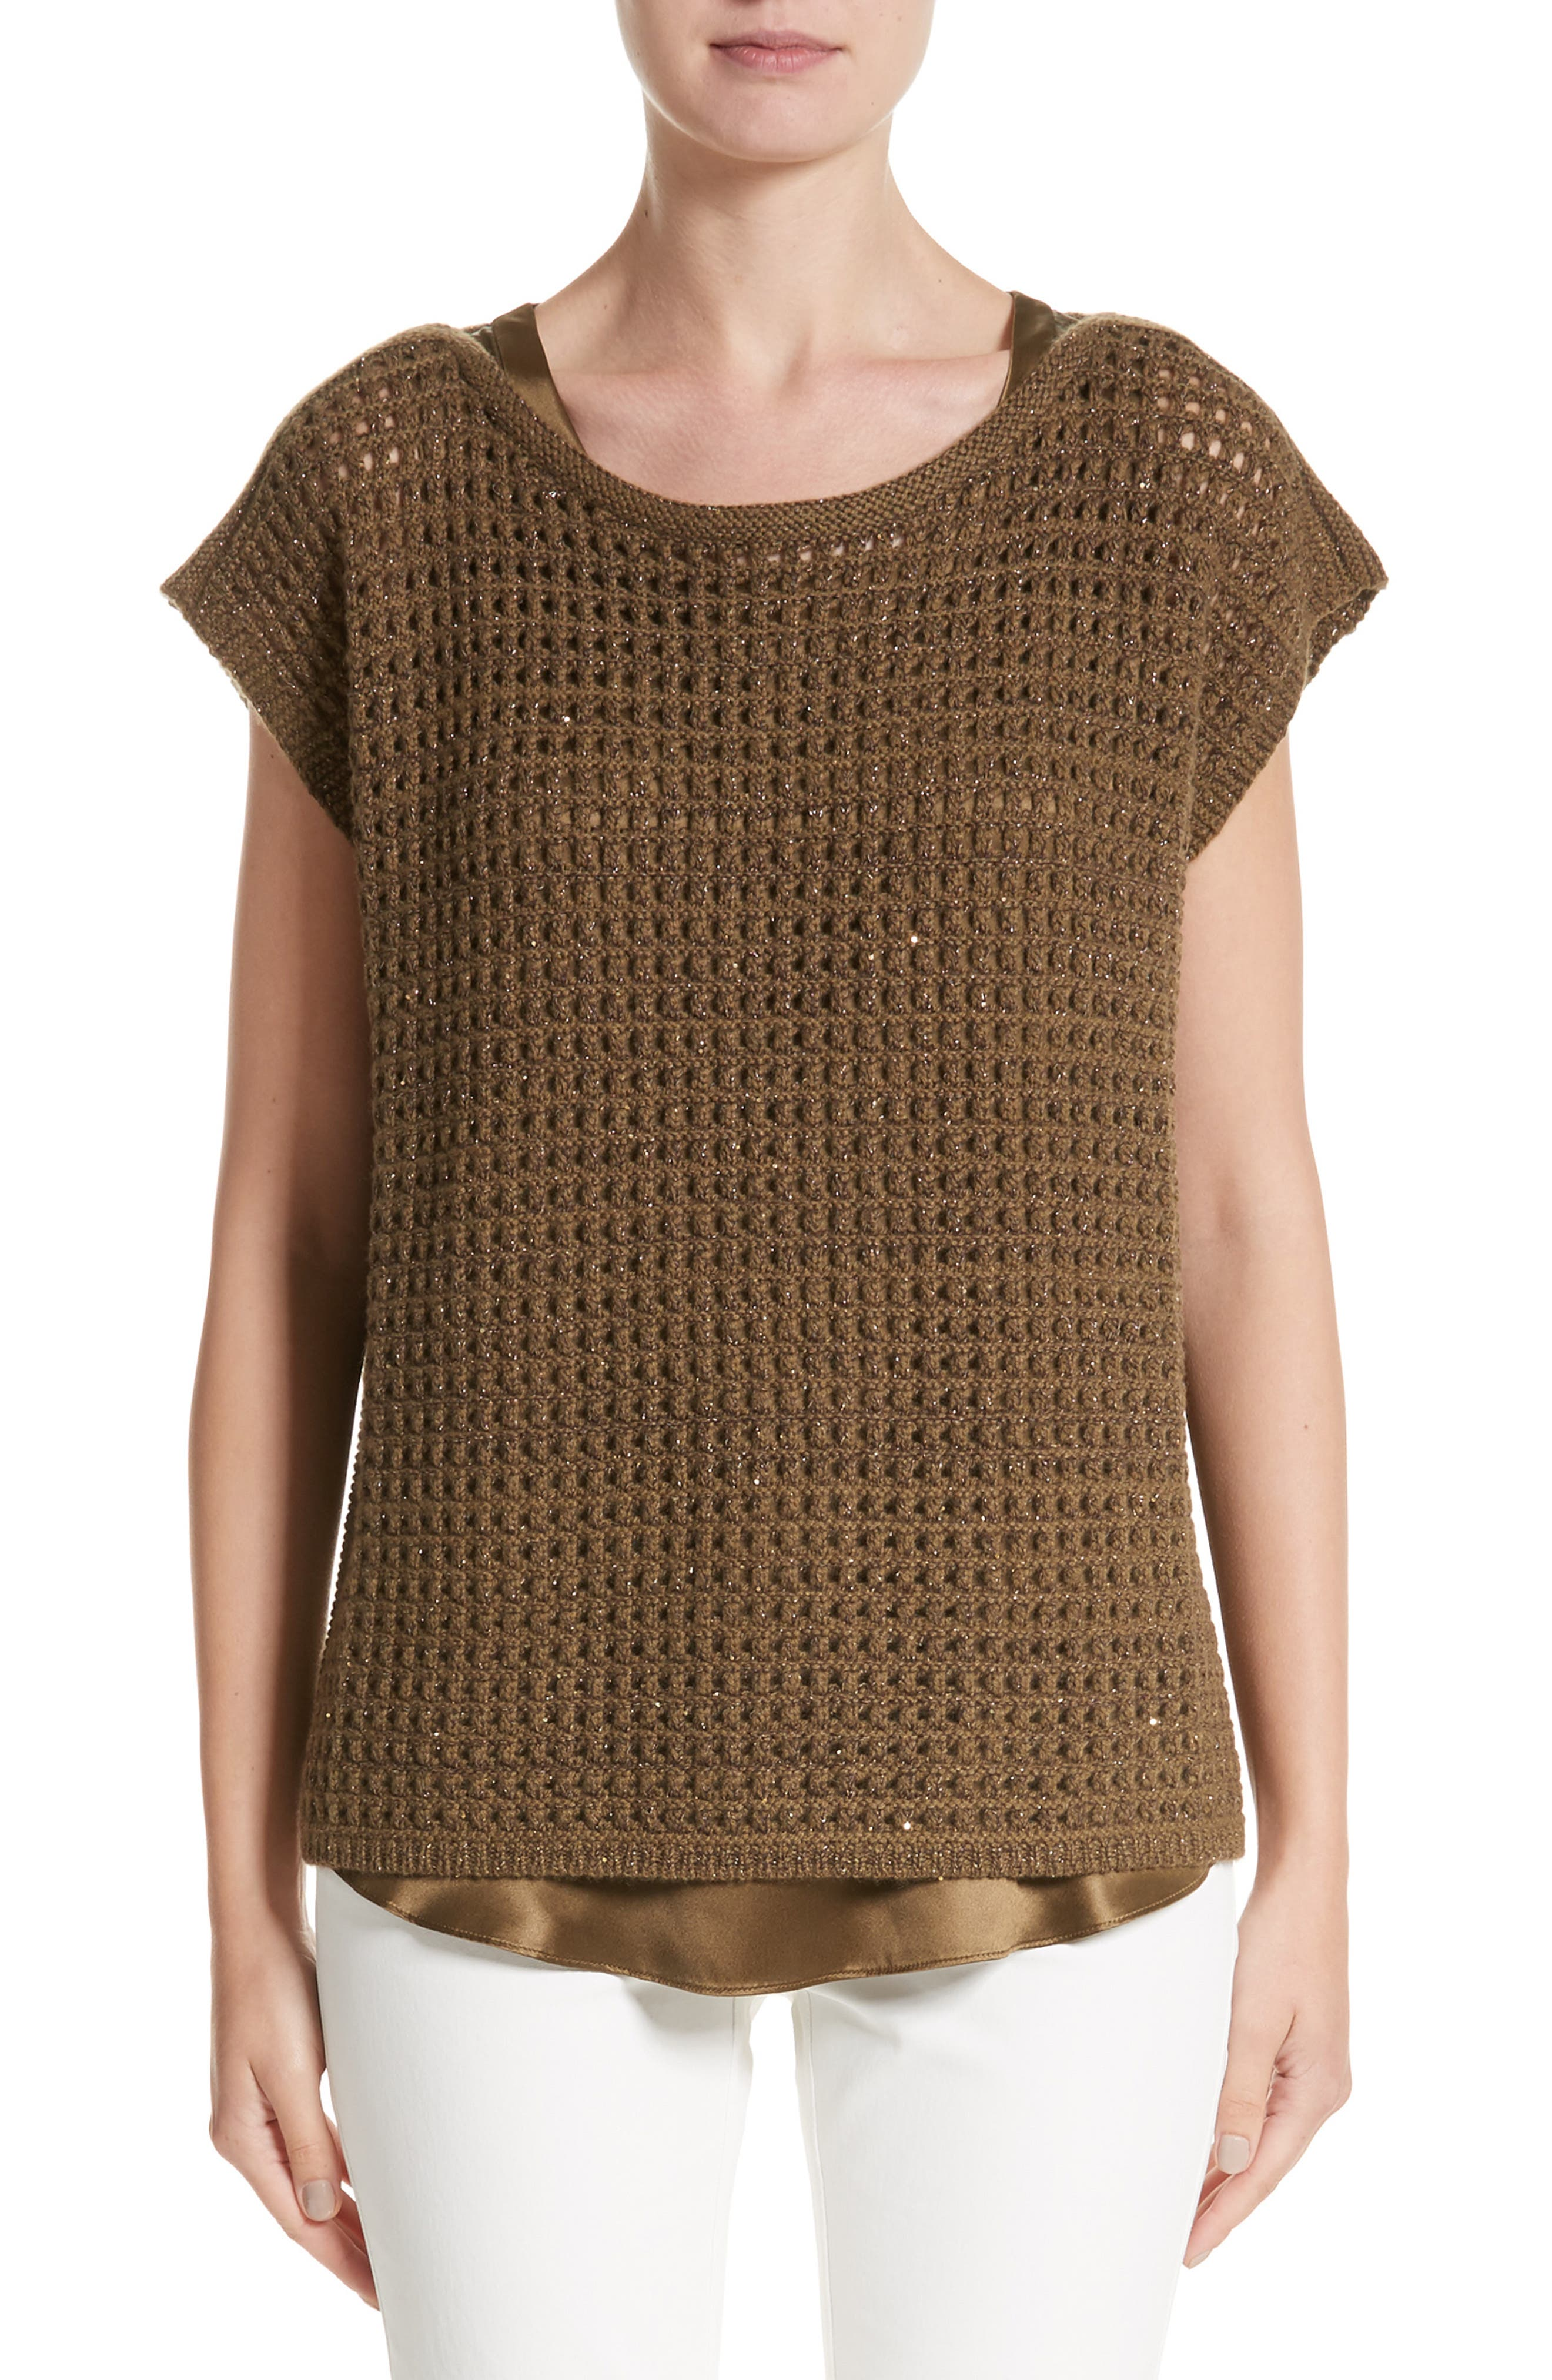 Main Image - Lafayette 148 New York Cashmere Open Stitch Sequin Sweater